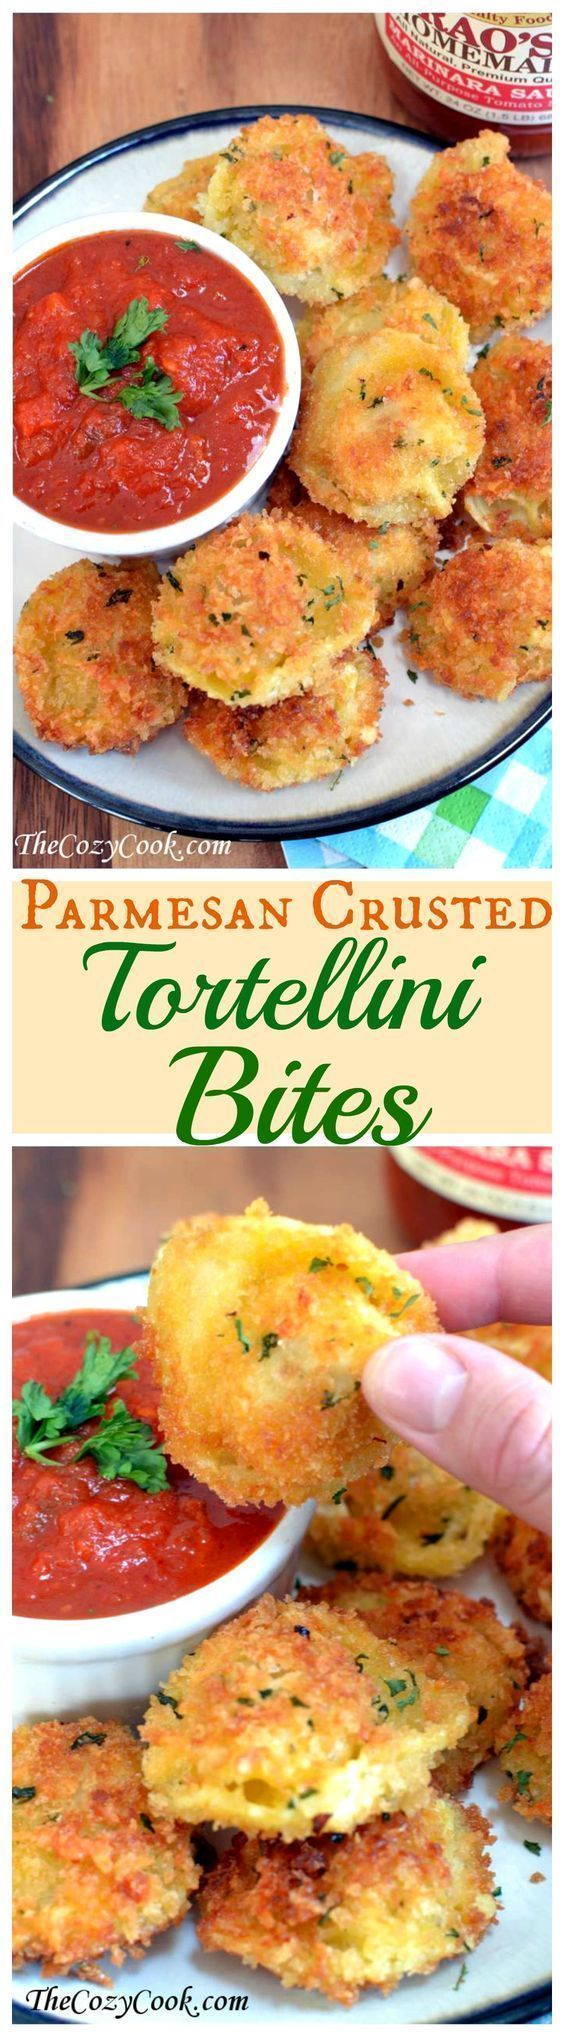 Parmesan Tortellini Bites Finger Foods Recipe via the cozy cook - The Best Easy Party Appetizers and Finger Foods Recipes - Quick family friendly snacks for Holidays, Tailgating and Super Bowl Parties! #pastafoodrecipes